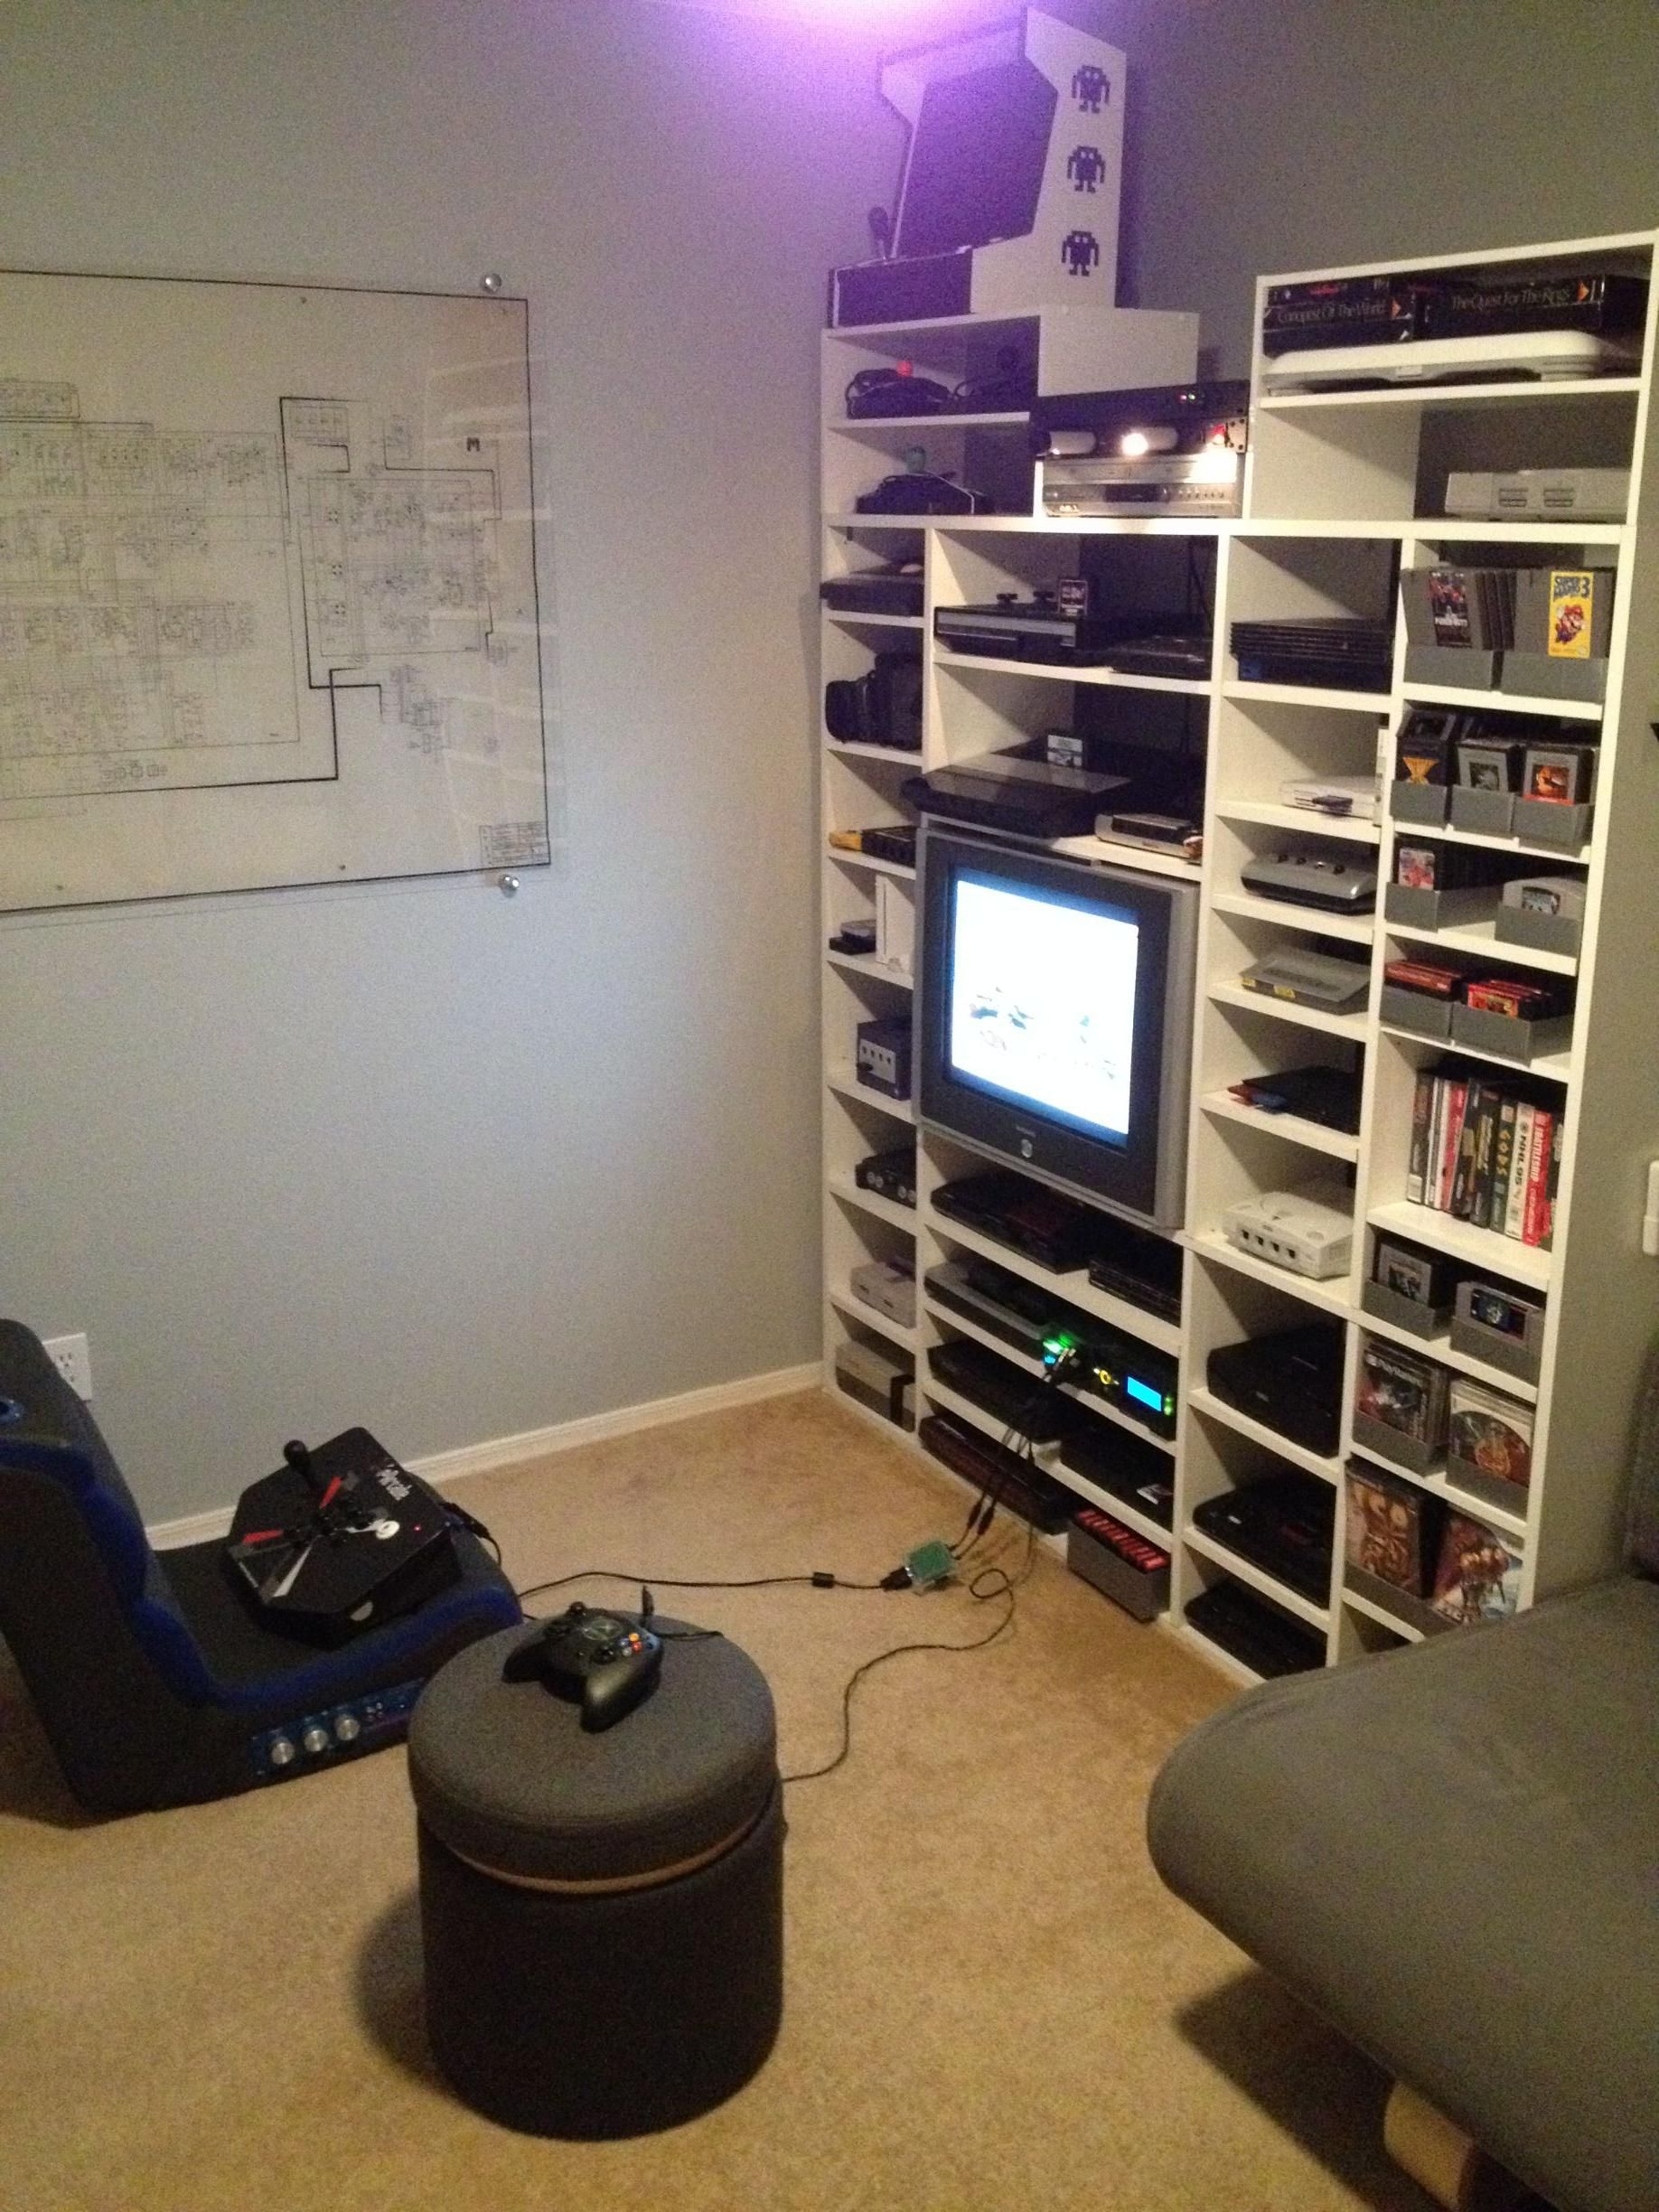 Video game console wall game room shelves via reddit user franchy36 look at all those gaming - Gaming room setup ideas ...